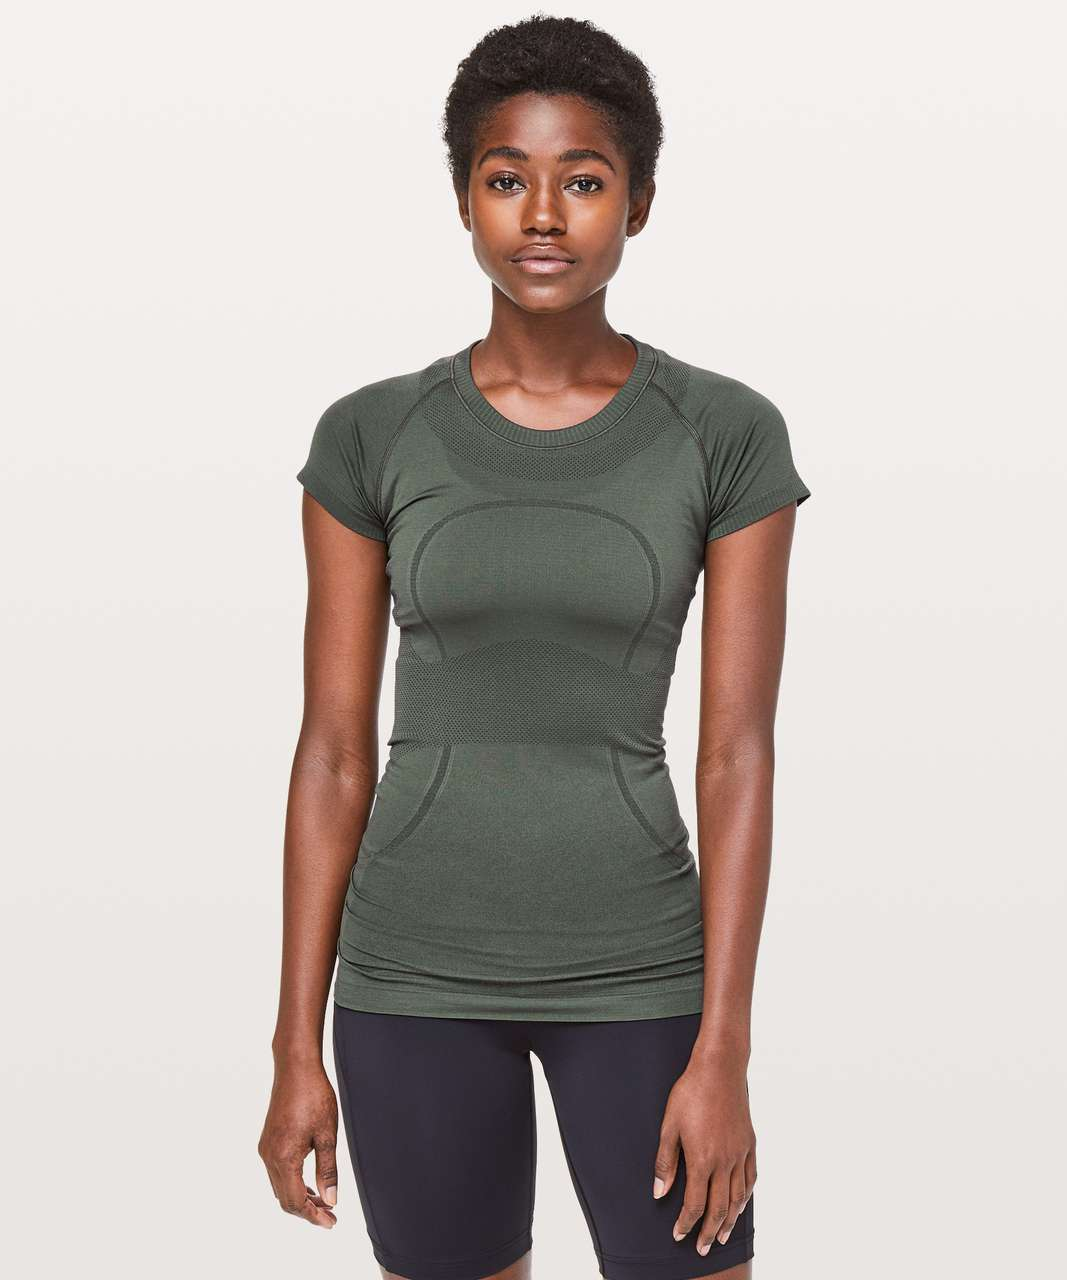 Lululemon Swiftly Tech Short Sleeve Crew - Camo Green / Camo Green